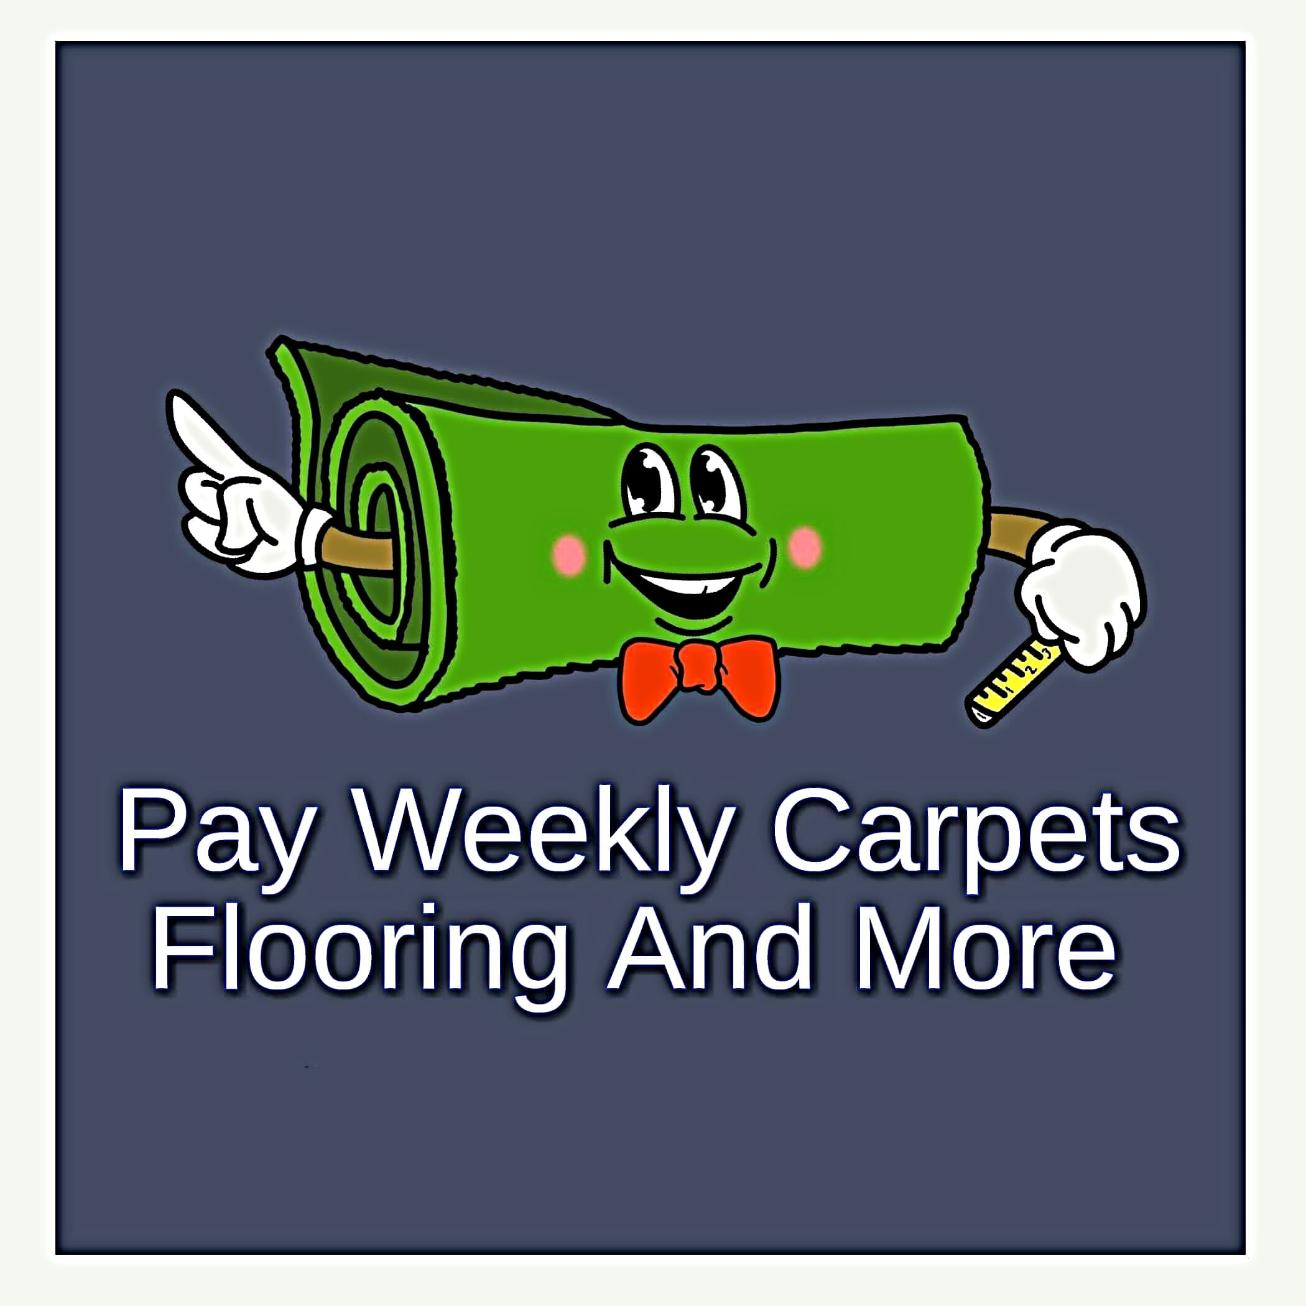 Pay Weekly Carpets And More Logo